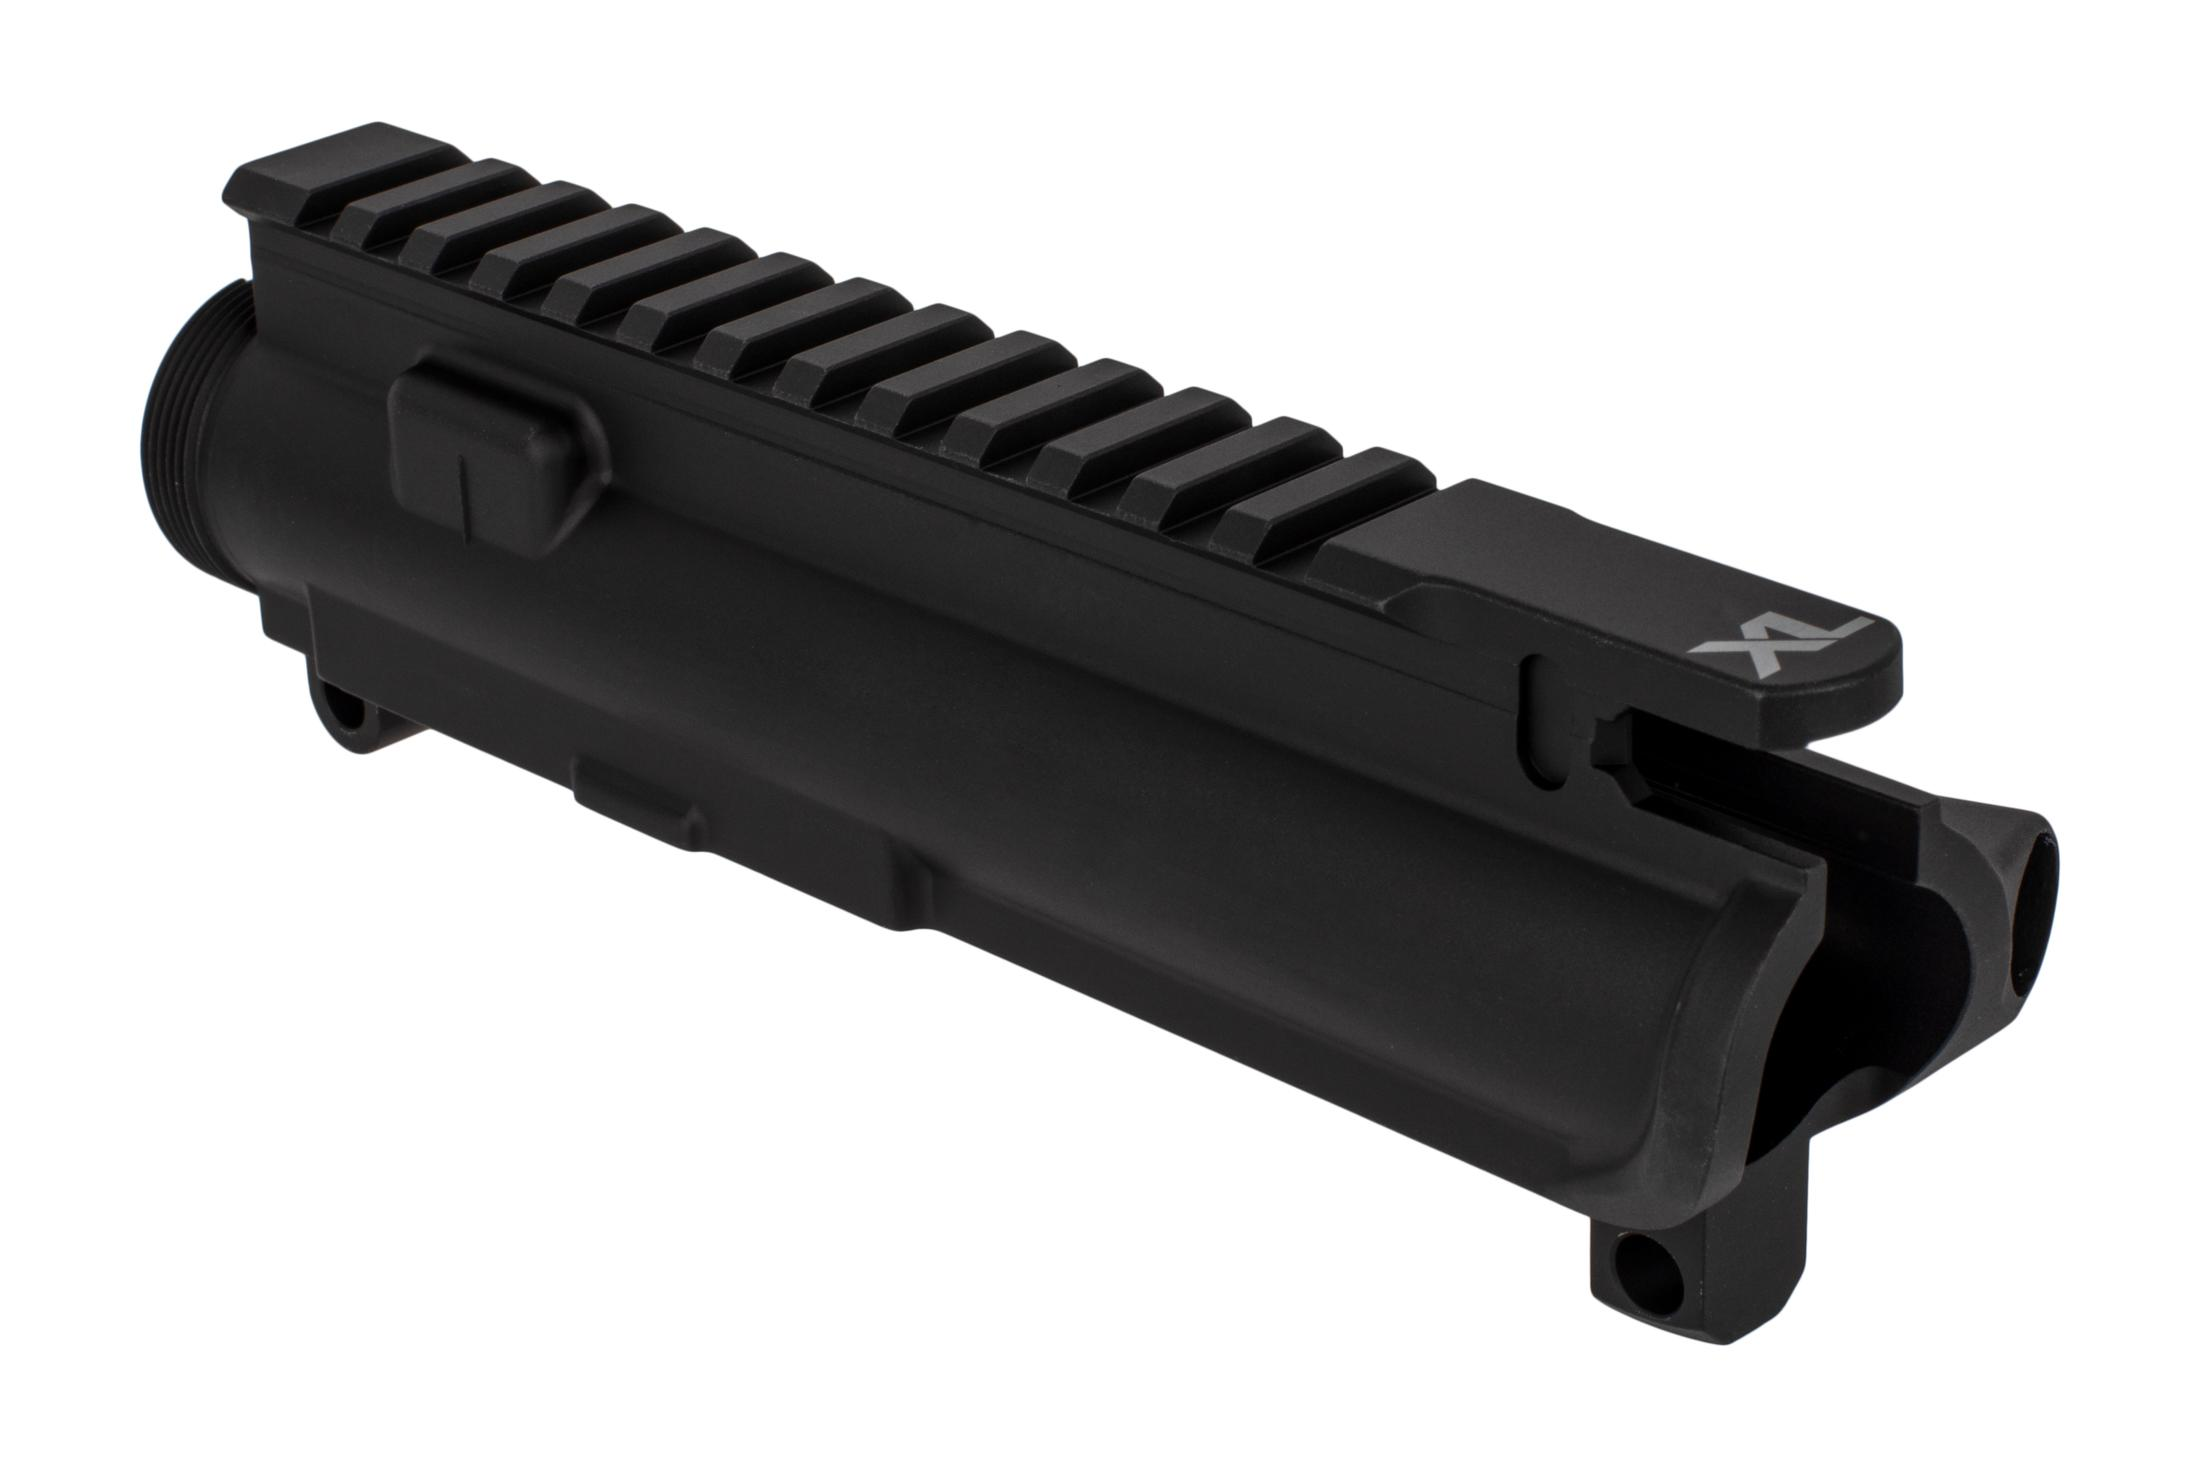 The Aero Precision upper XL is compatible with Mil-Spec components